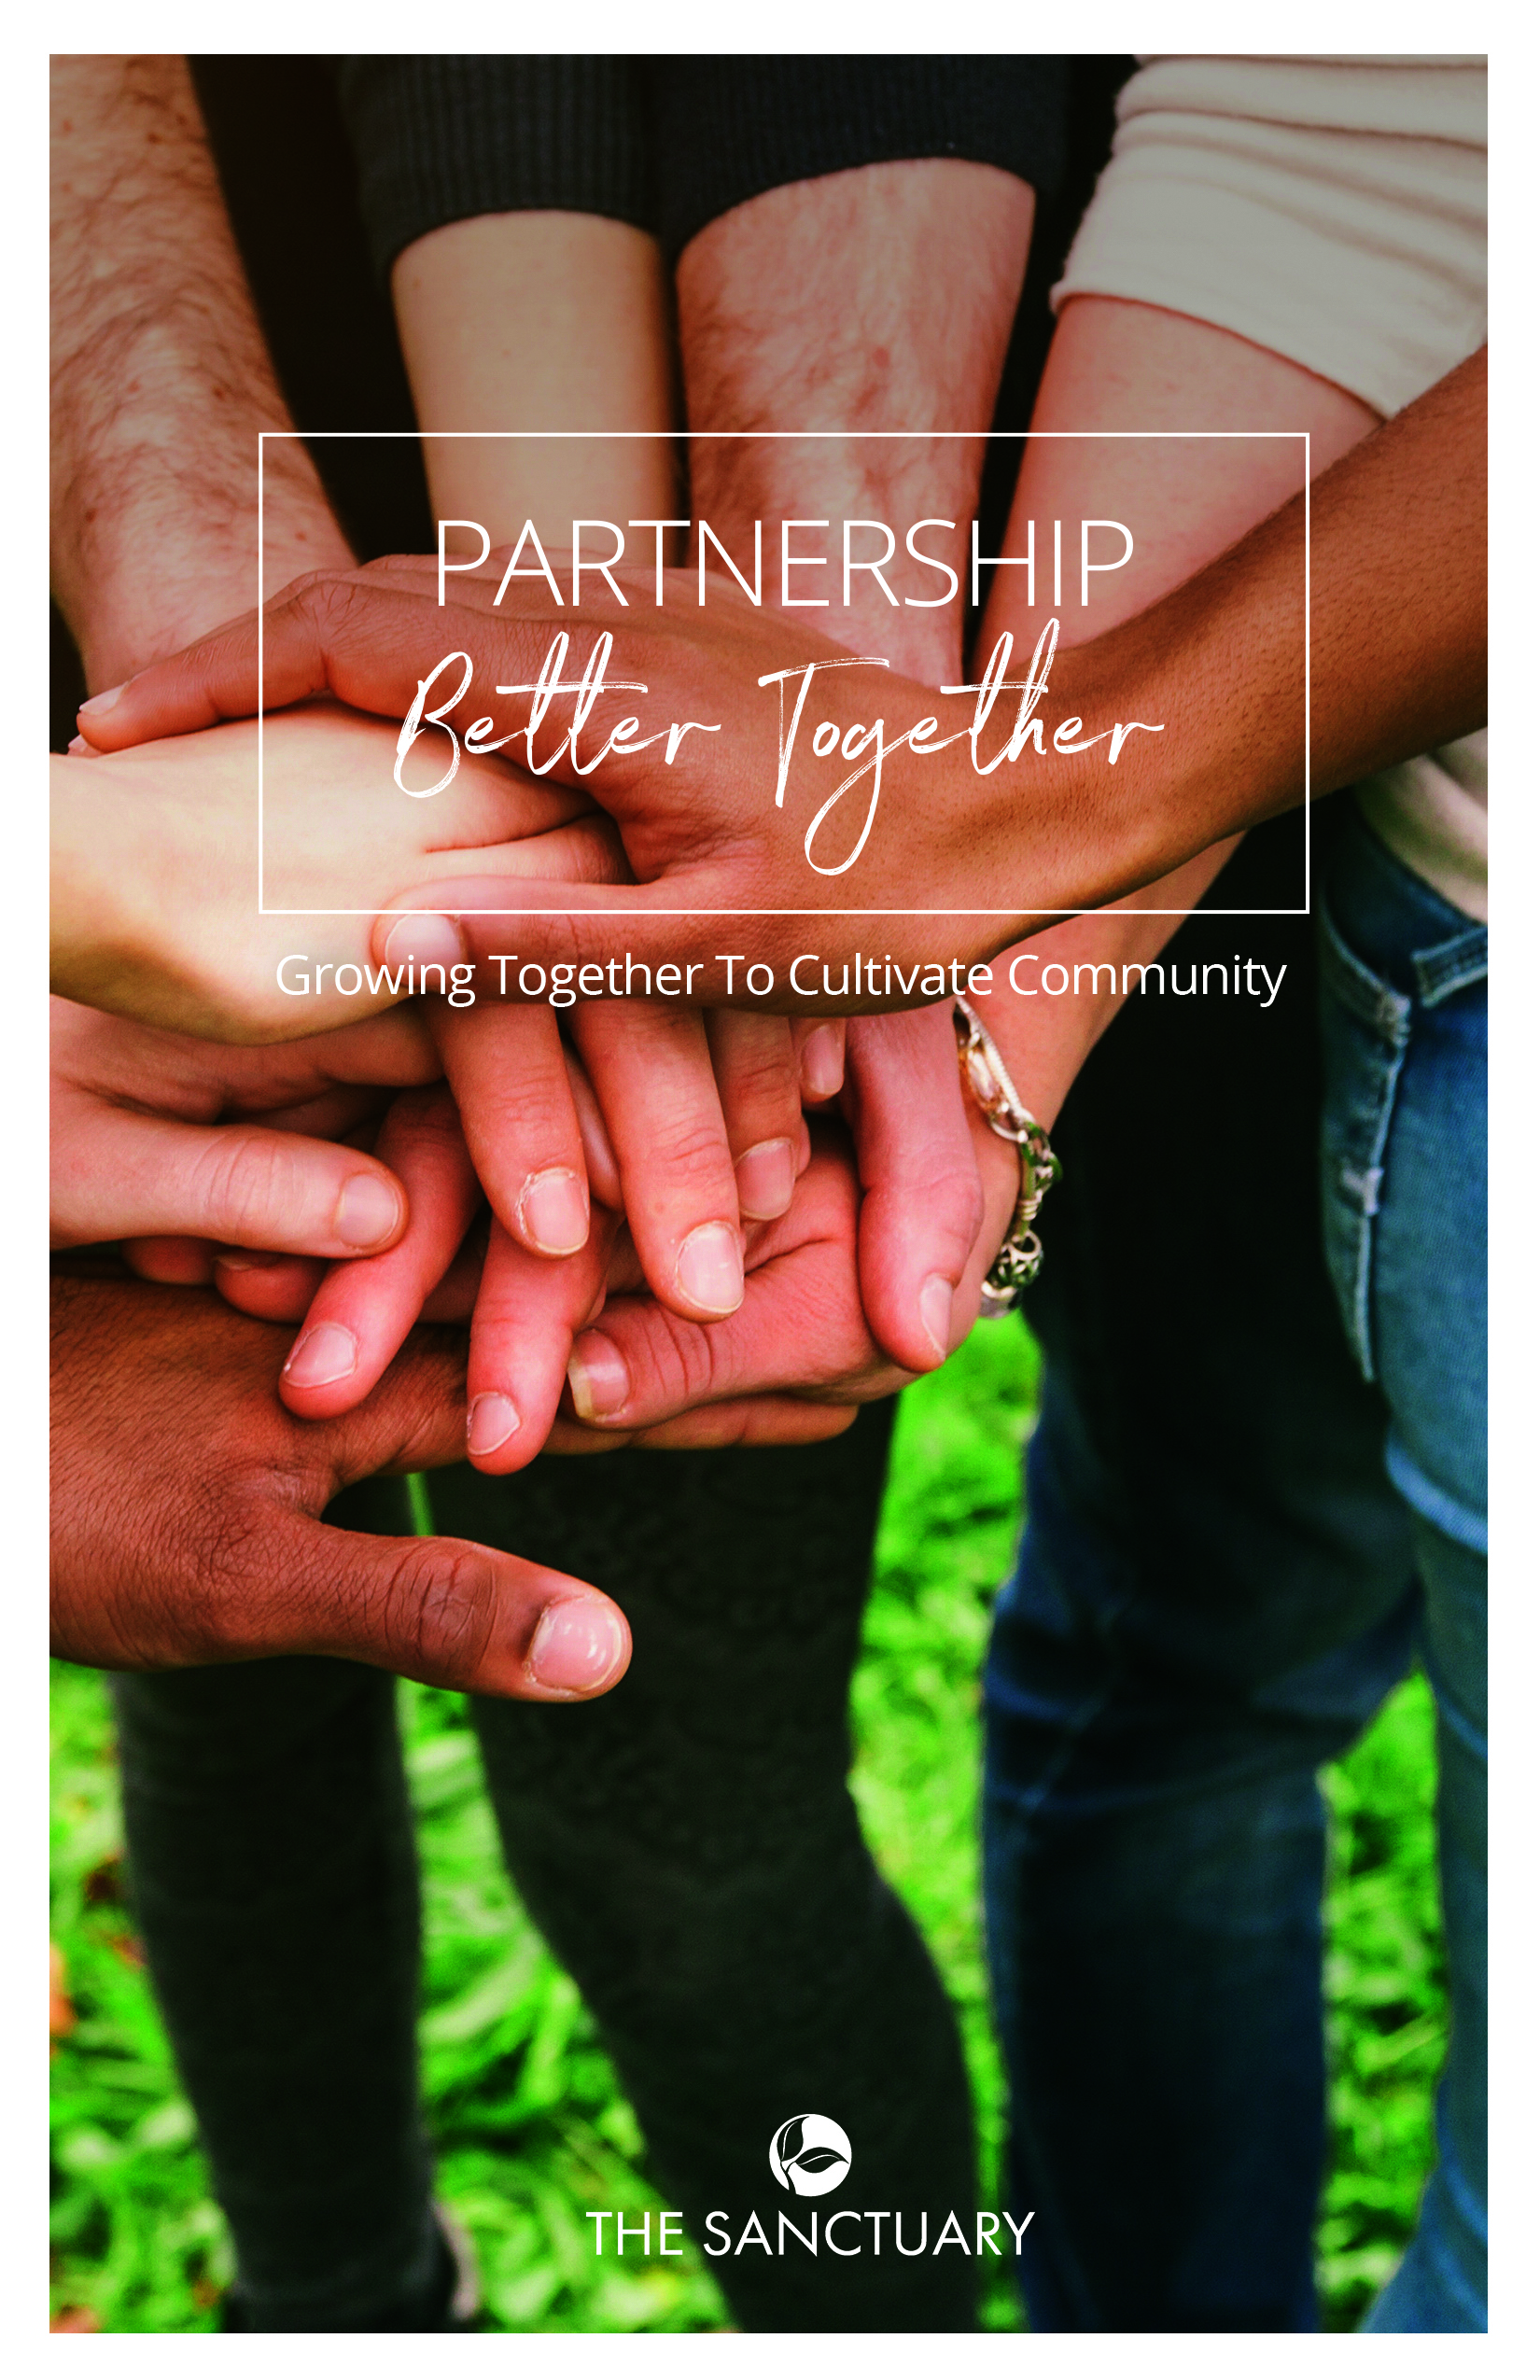 Readers_Partnership-Covers-front.jpg